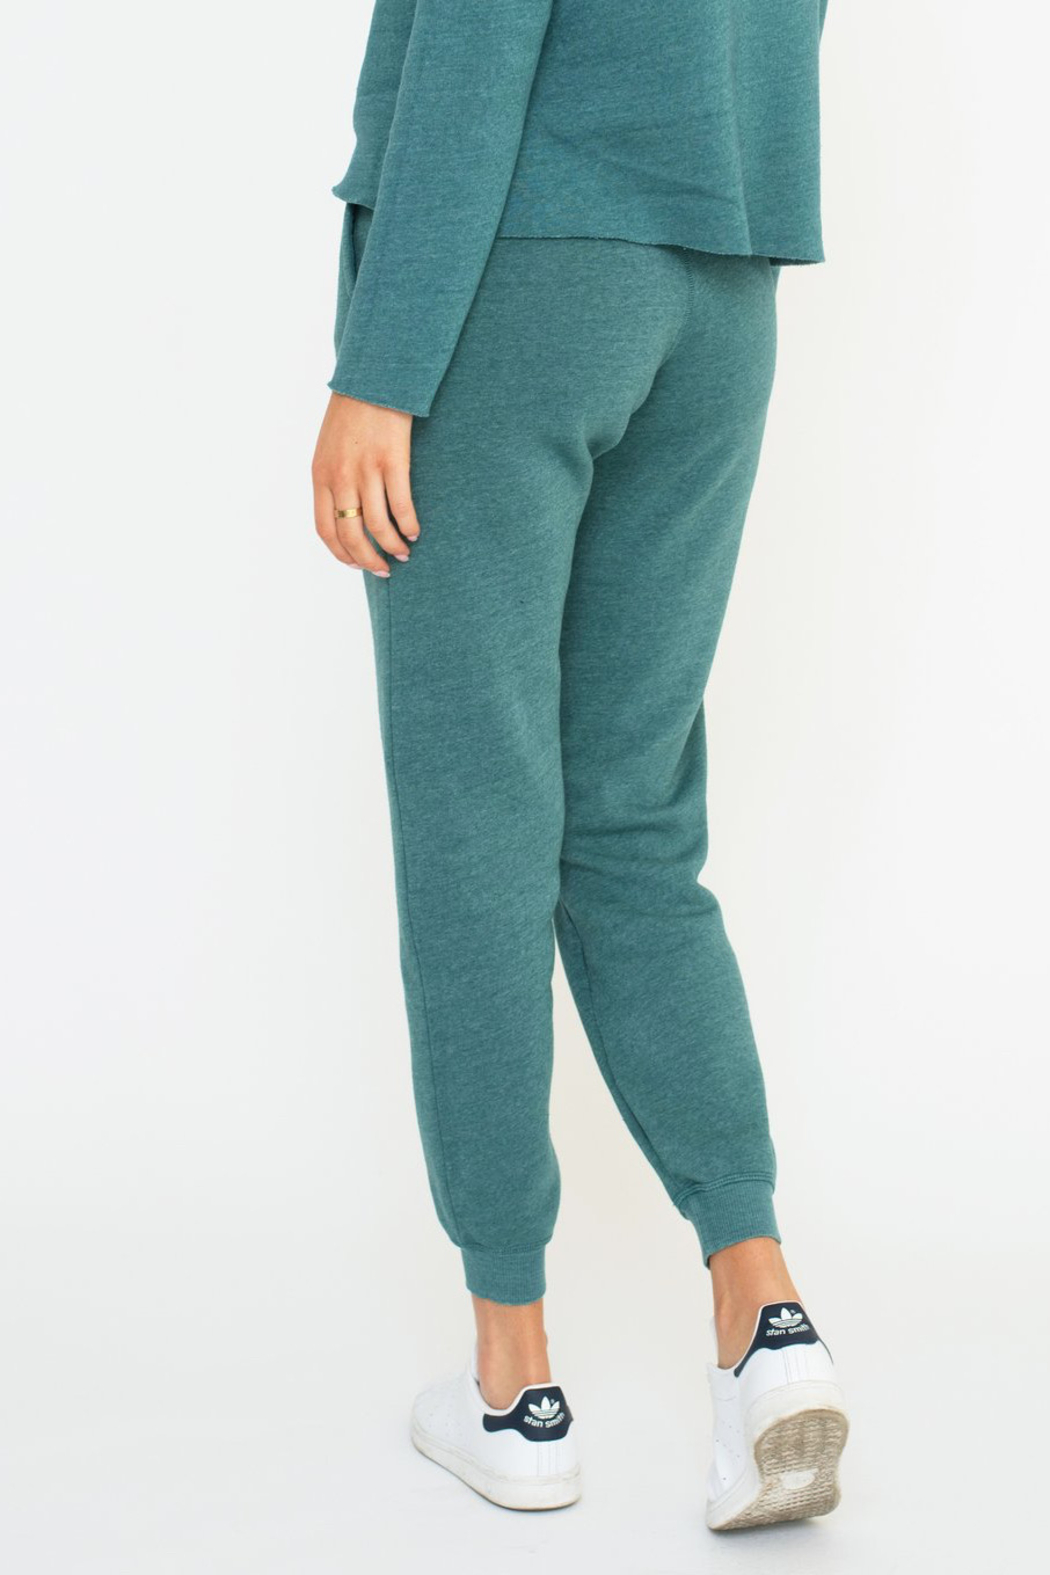 Sol Angeles Zion Jogger - Glade - Front Full Image